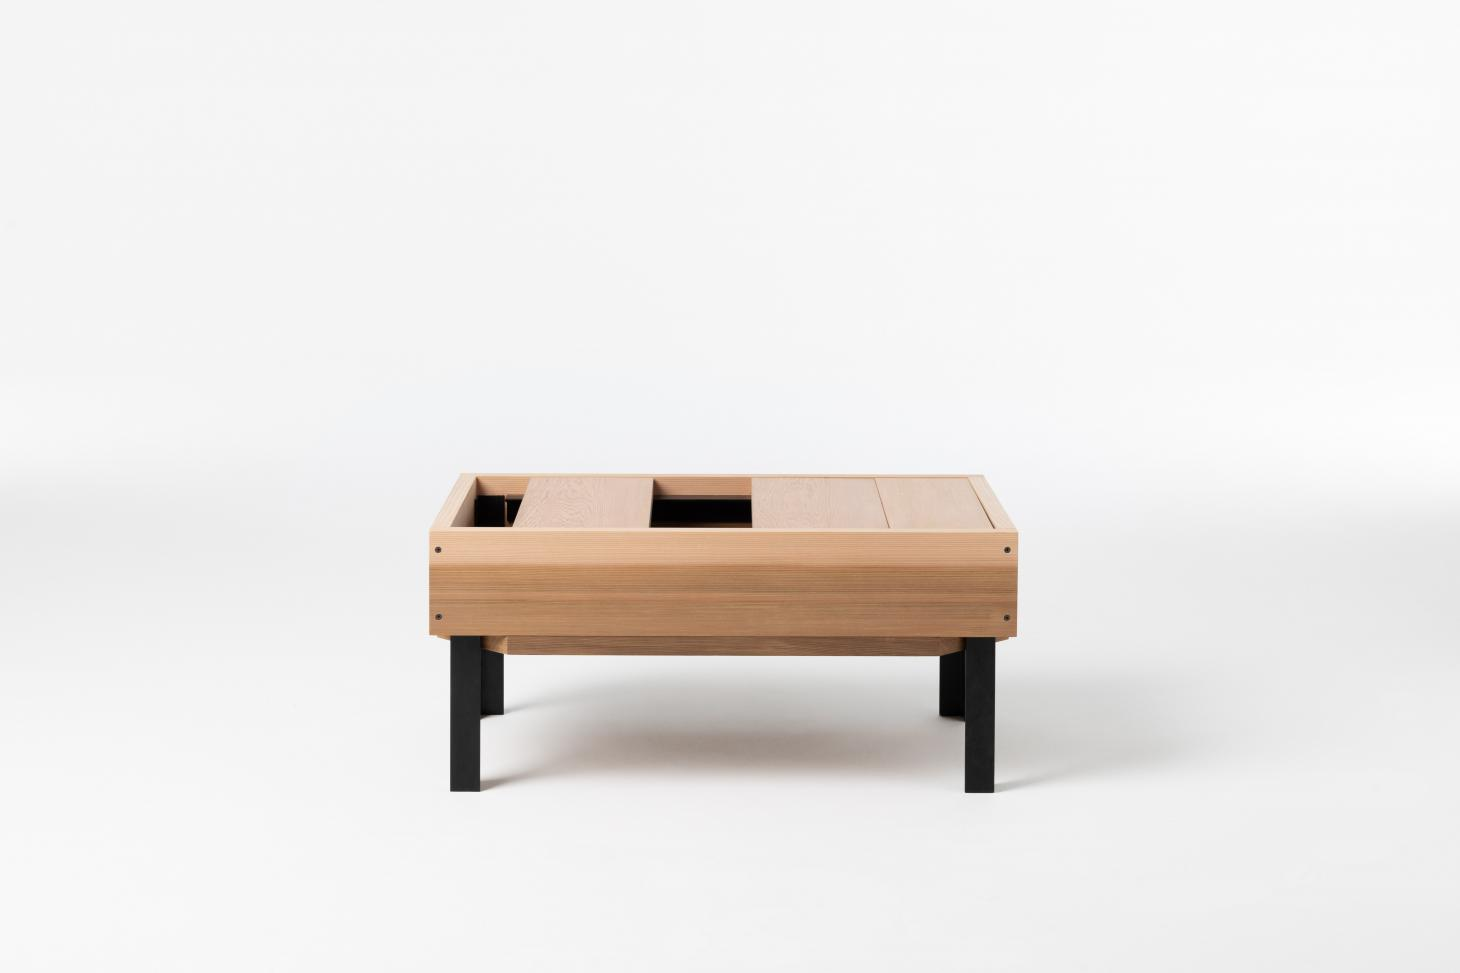 Storage bench made of wood